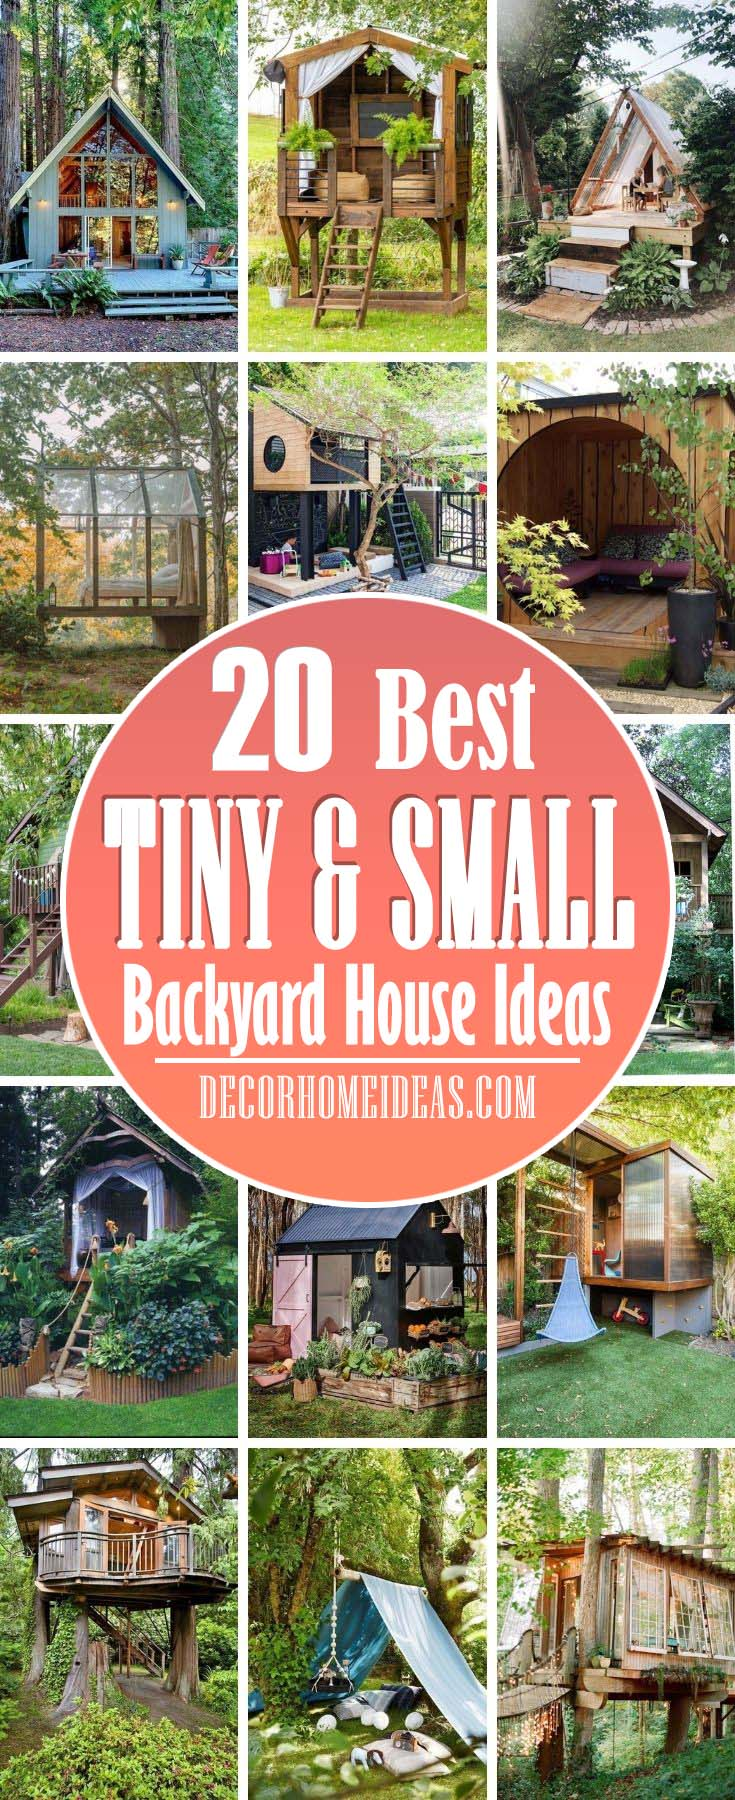 Best Small Backyard House Ideas. If you think there is something missing in your backyard why don't you add a small backyard house. It could be a perfect relaxation retreat or a place your kids would use as a place to play games. #decorhomeideas